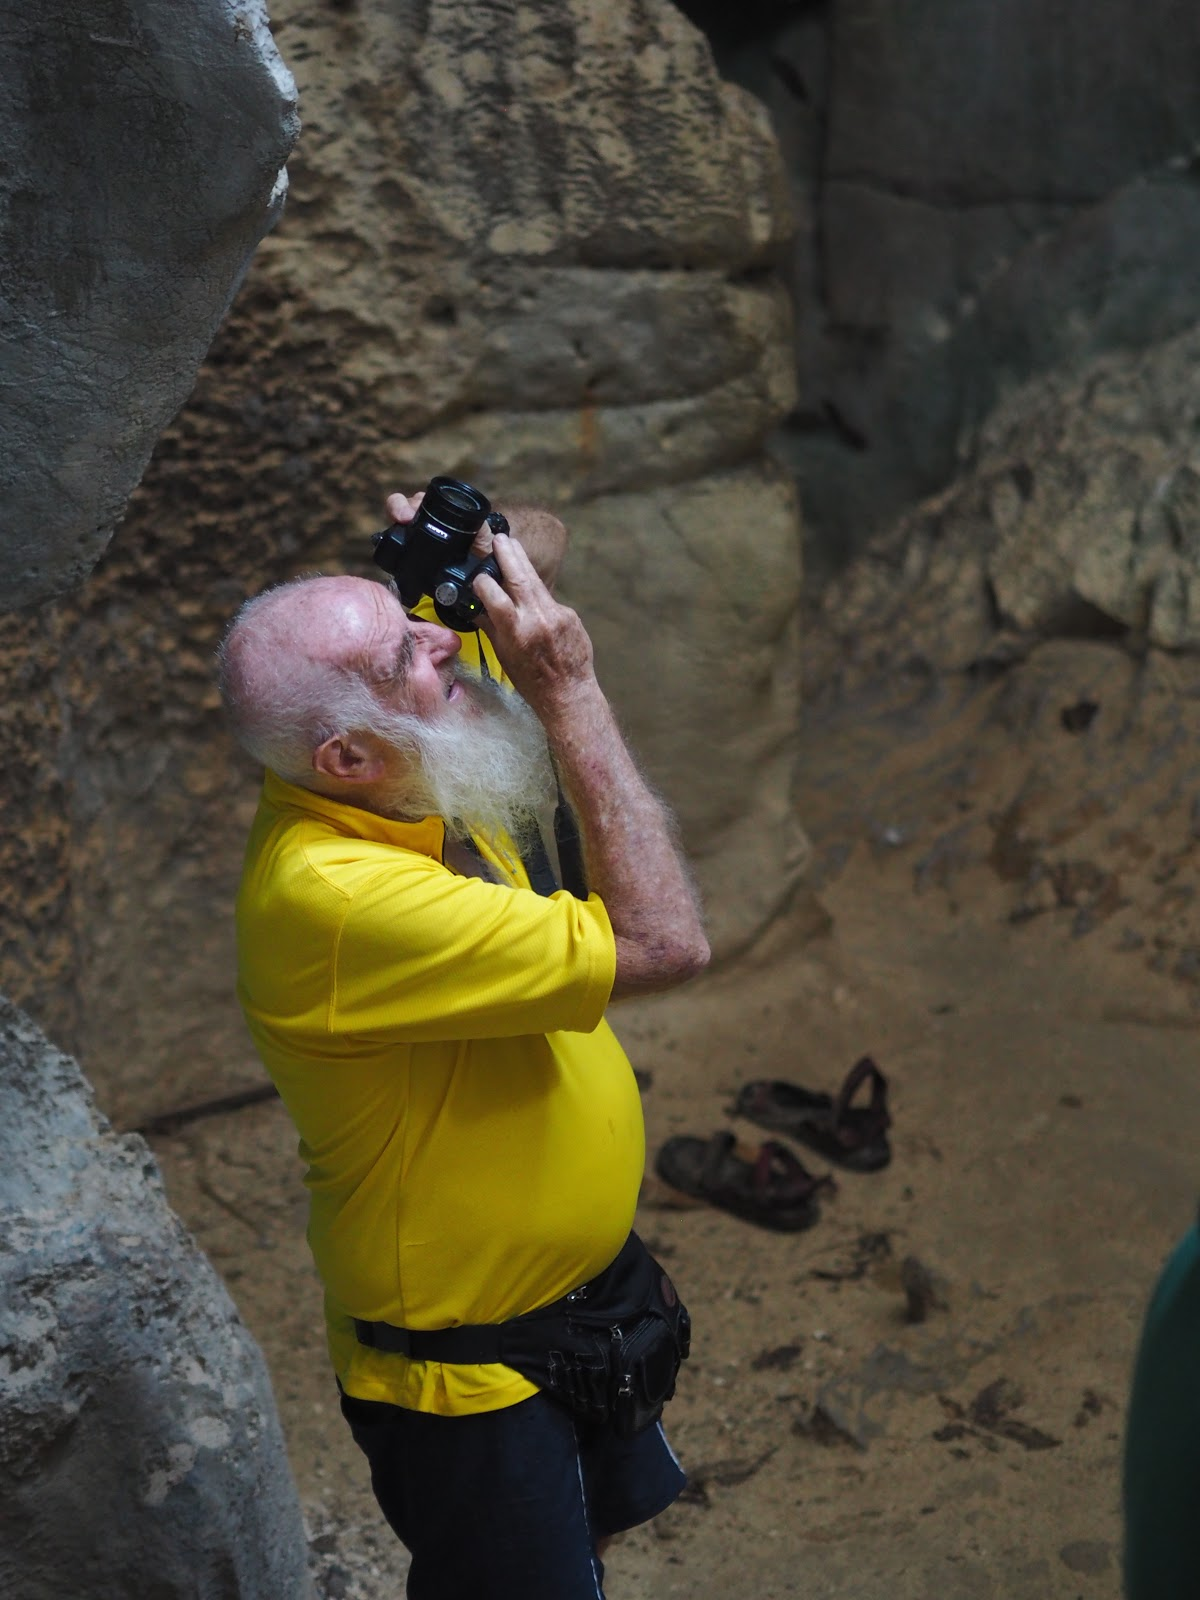 man with camera in cave, philippines